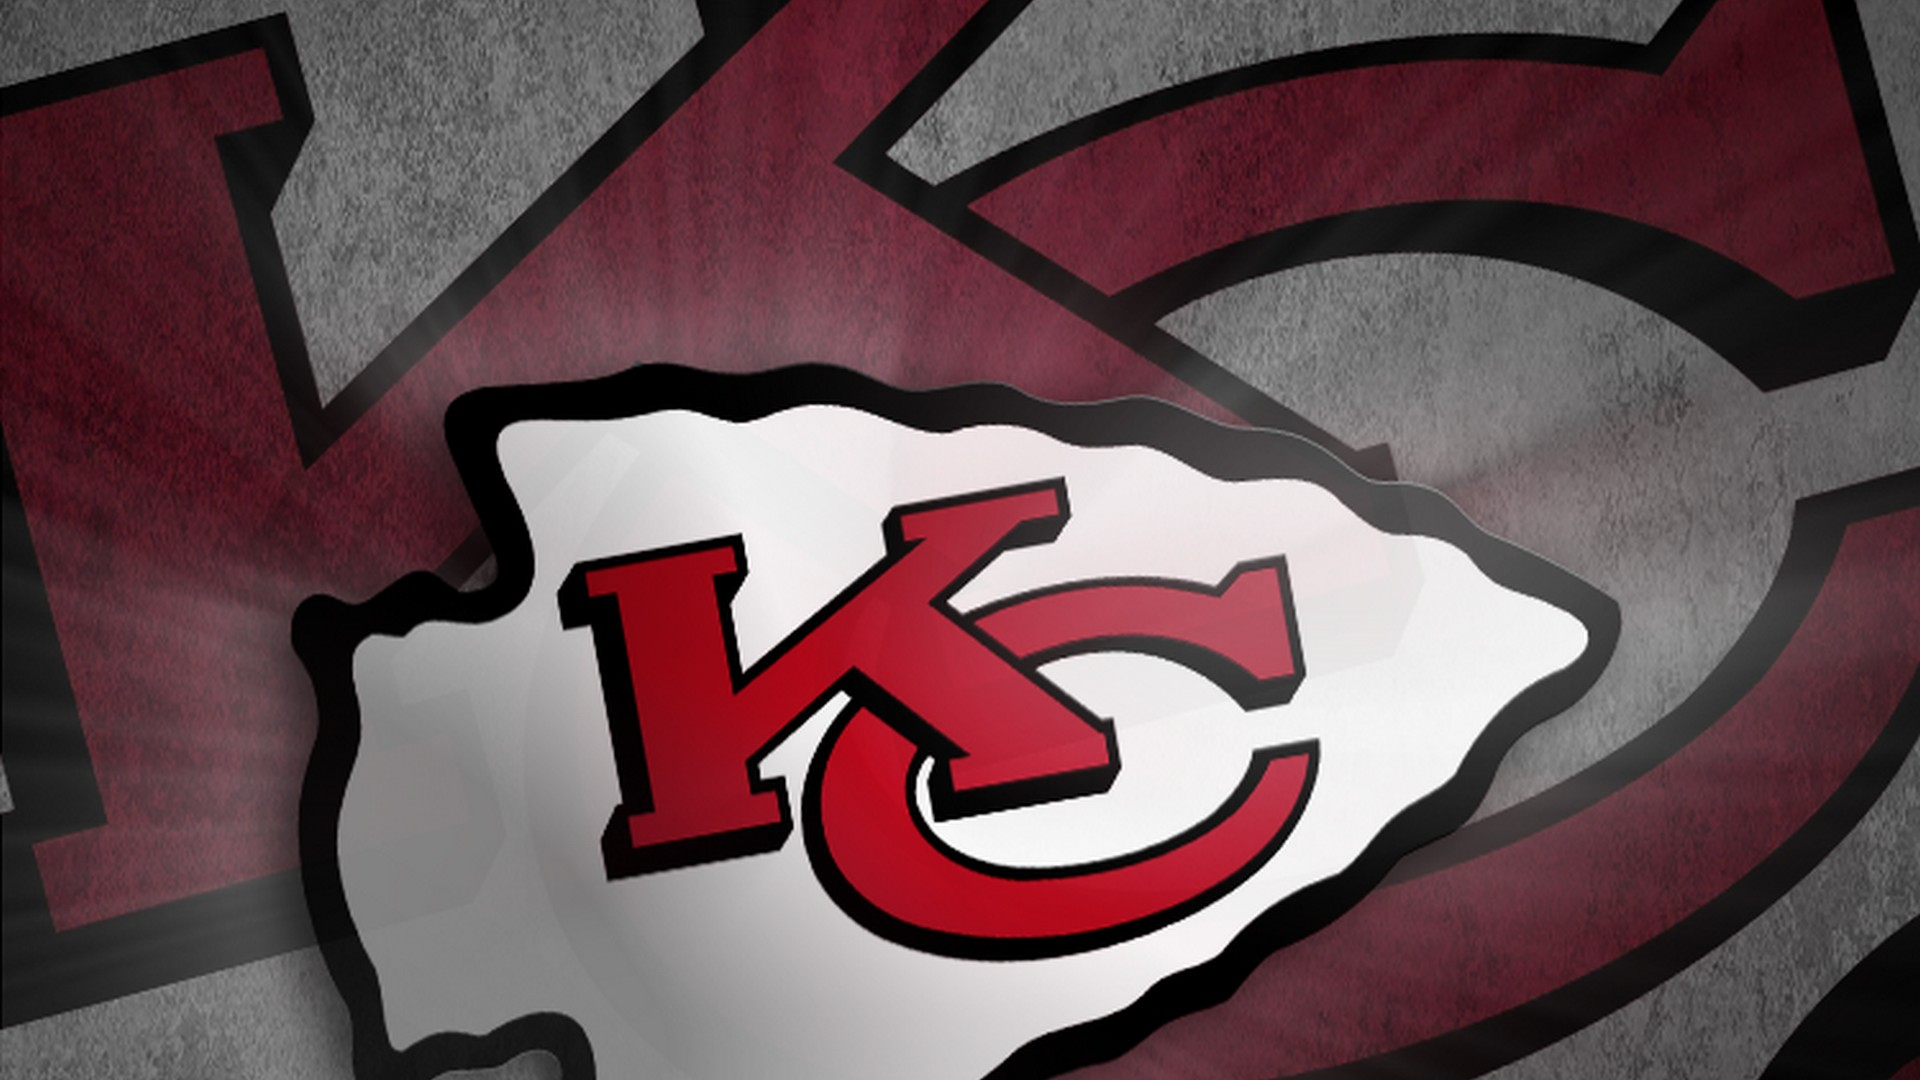 Kansas City Chiefs Wallpaper with resolution 1920x1080 pixel. You can make this wallpaper for your Mac or Windows Desktop Background, iPhone, Android or Tablet and another Smartphone device